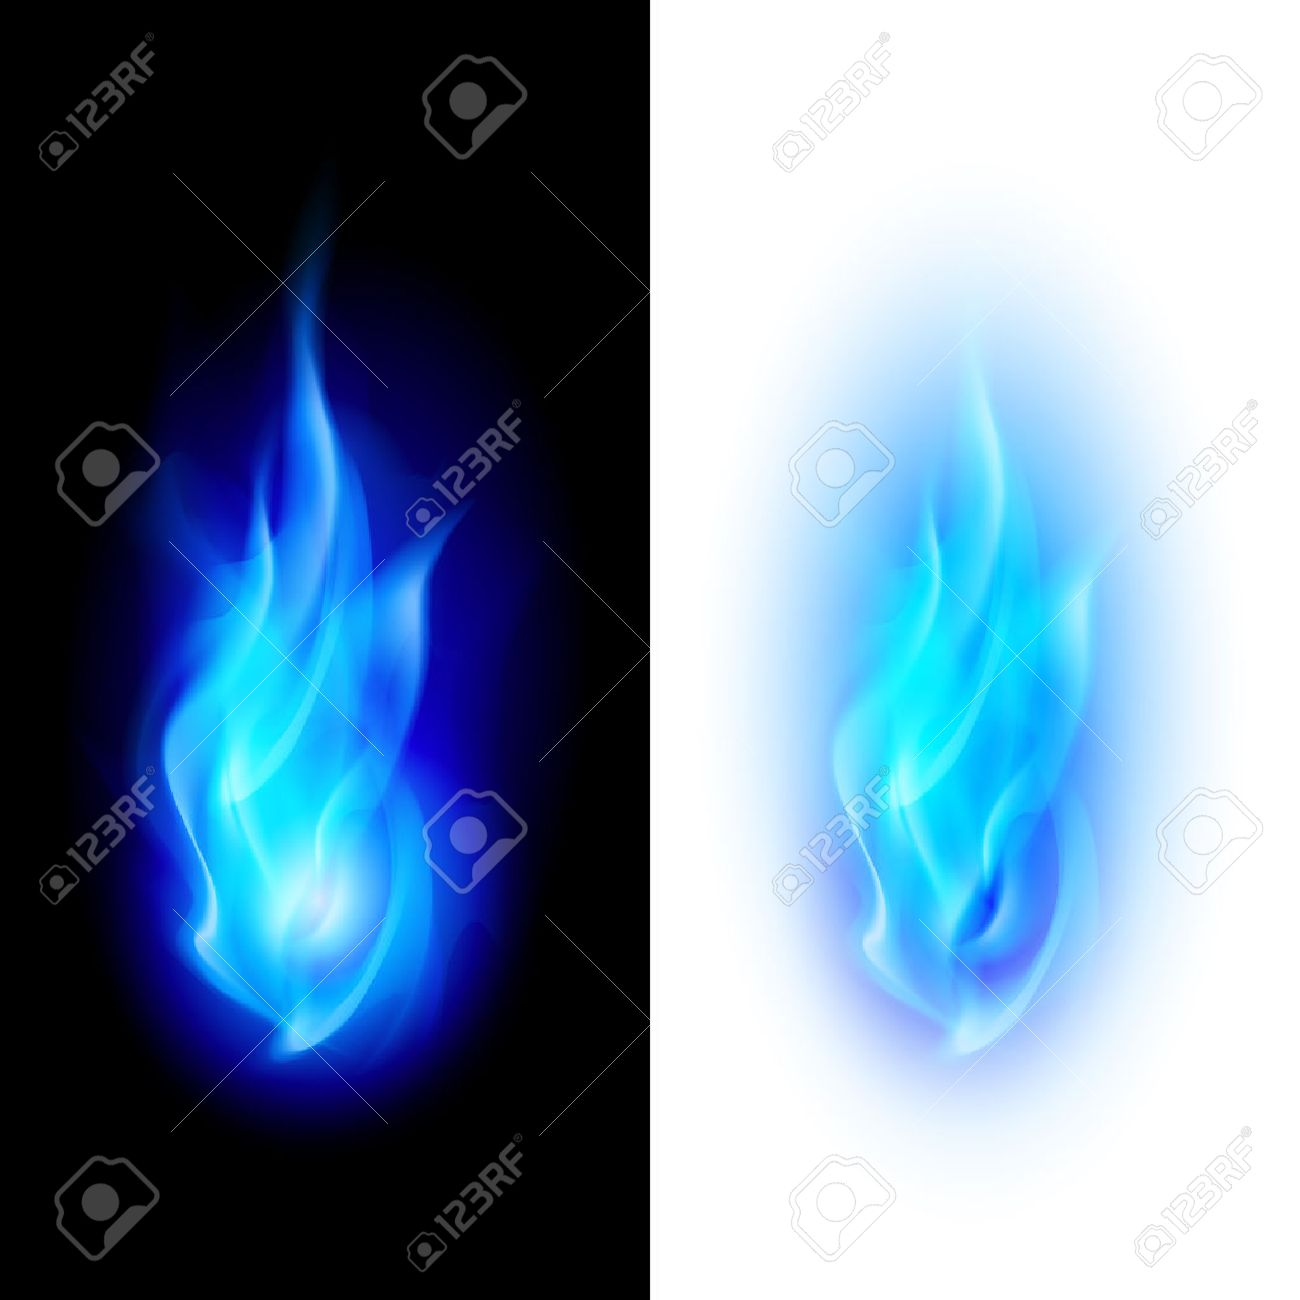 Blue fire flames over contrast black and white backgrounds Stock Vector - 33259458